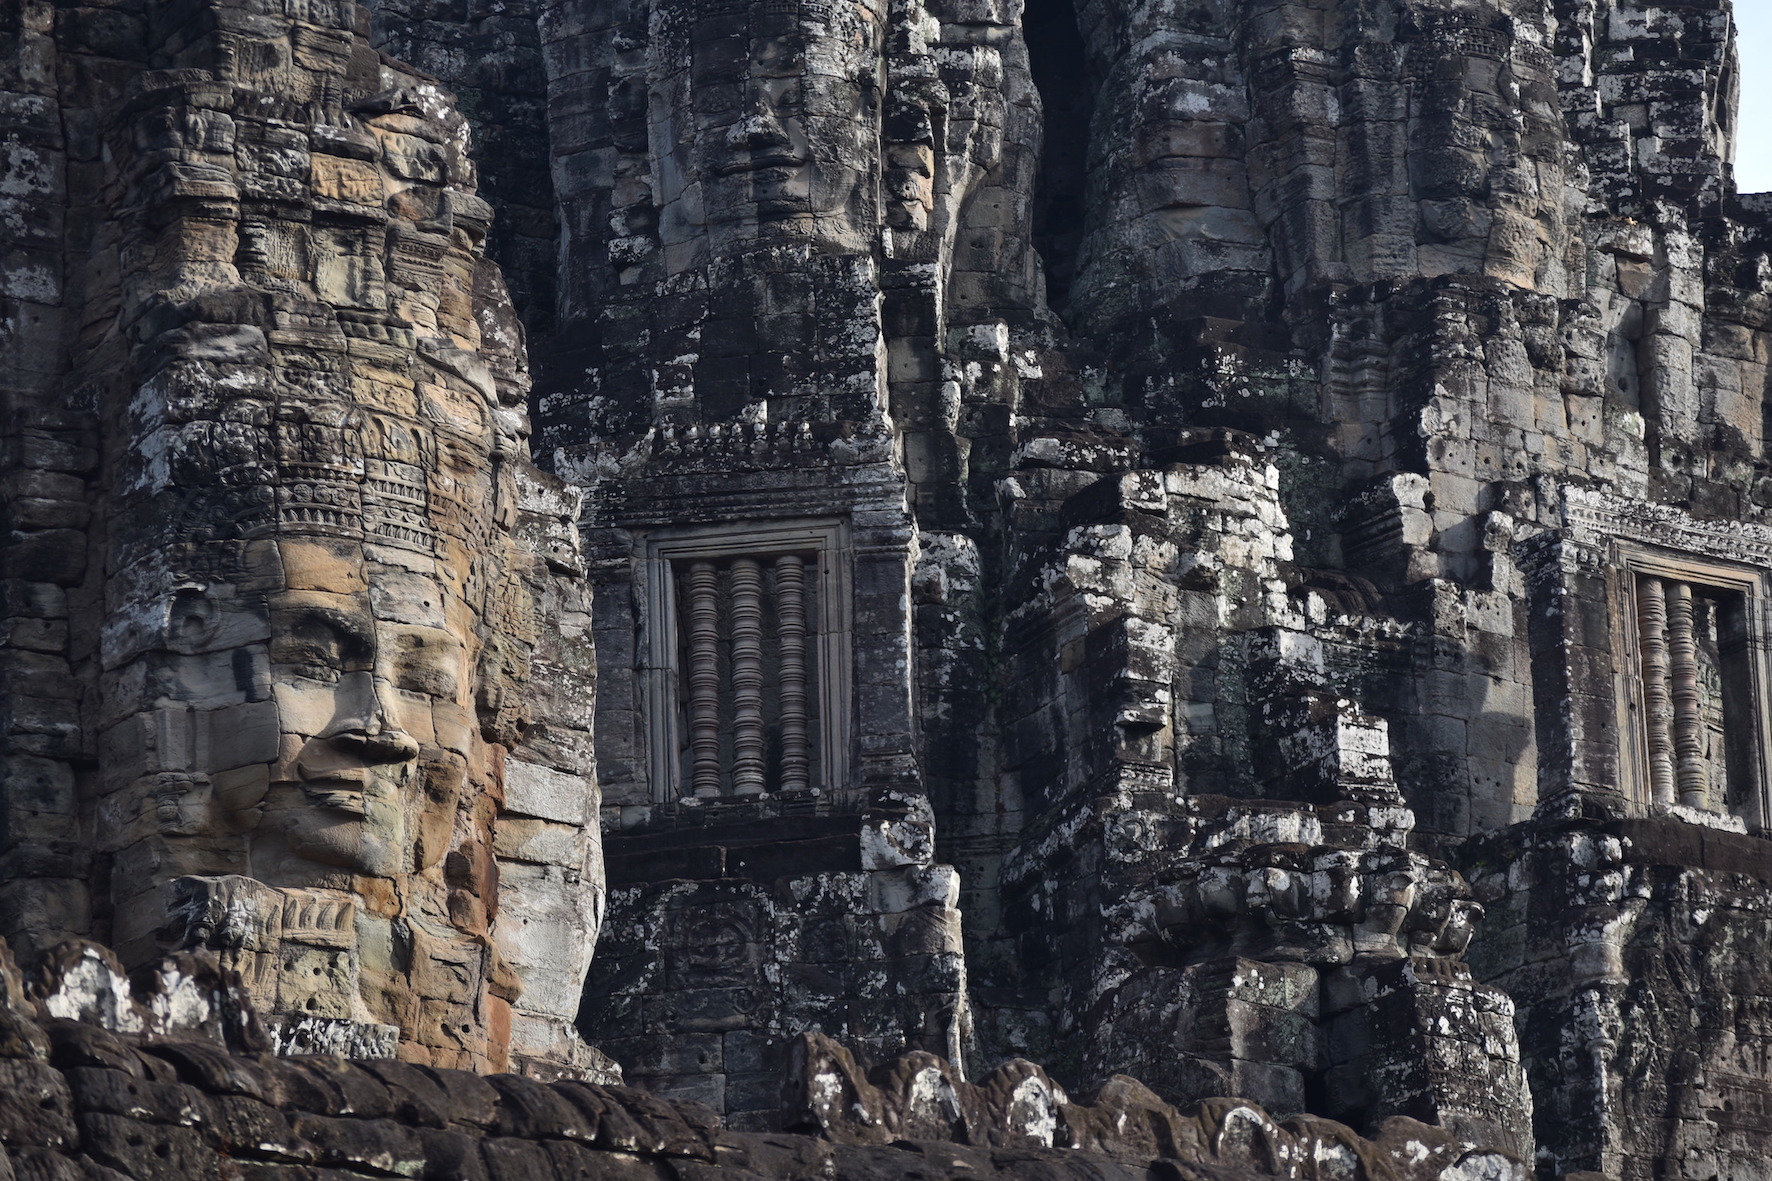 Siem Reap - A Lovely Planet - Hayley Lewis